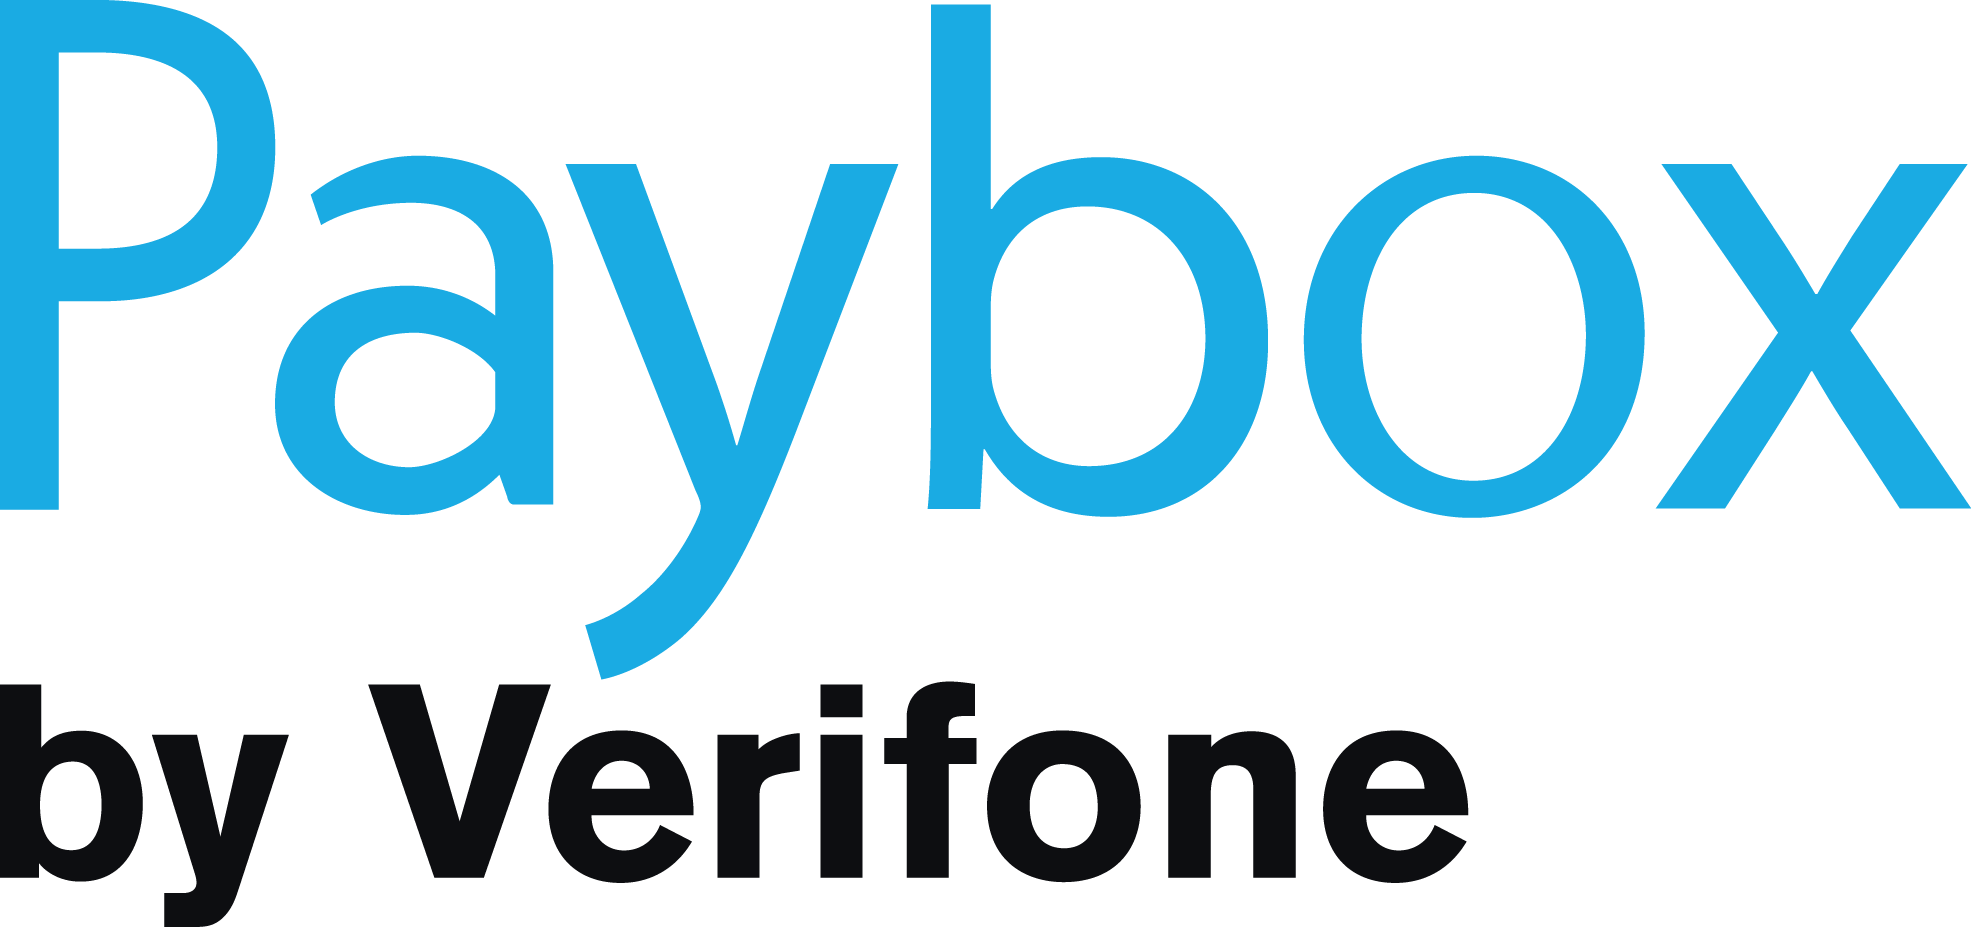 PayboxbyVerifone_RVB_HD.png